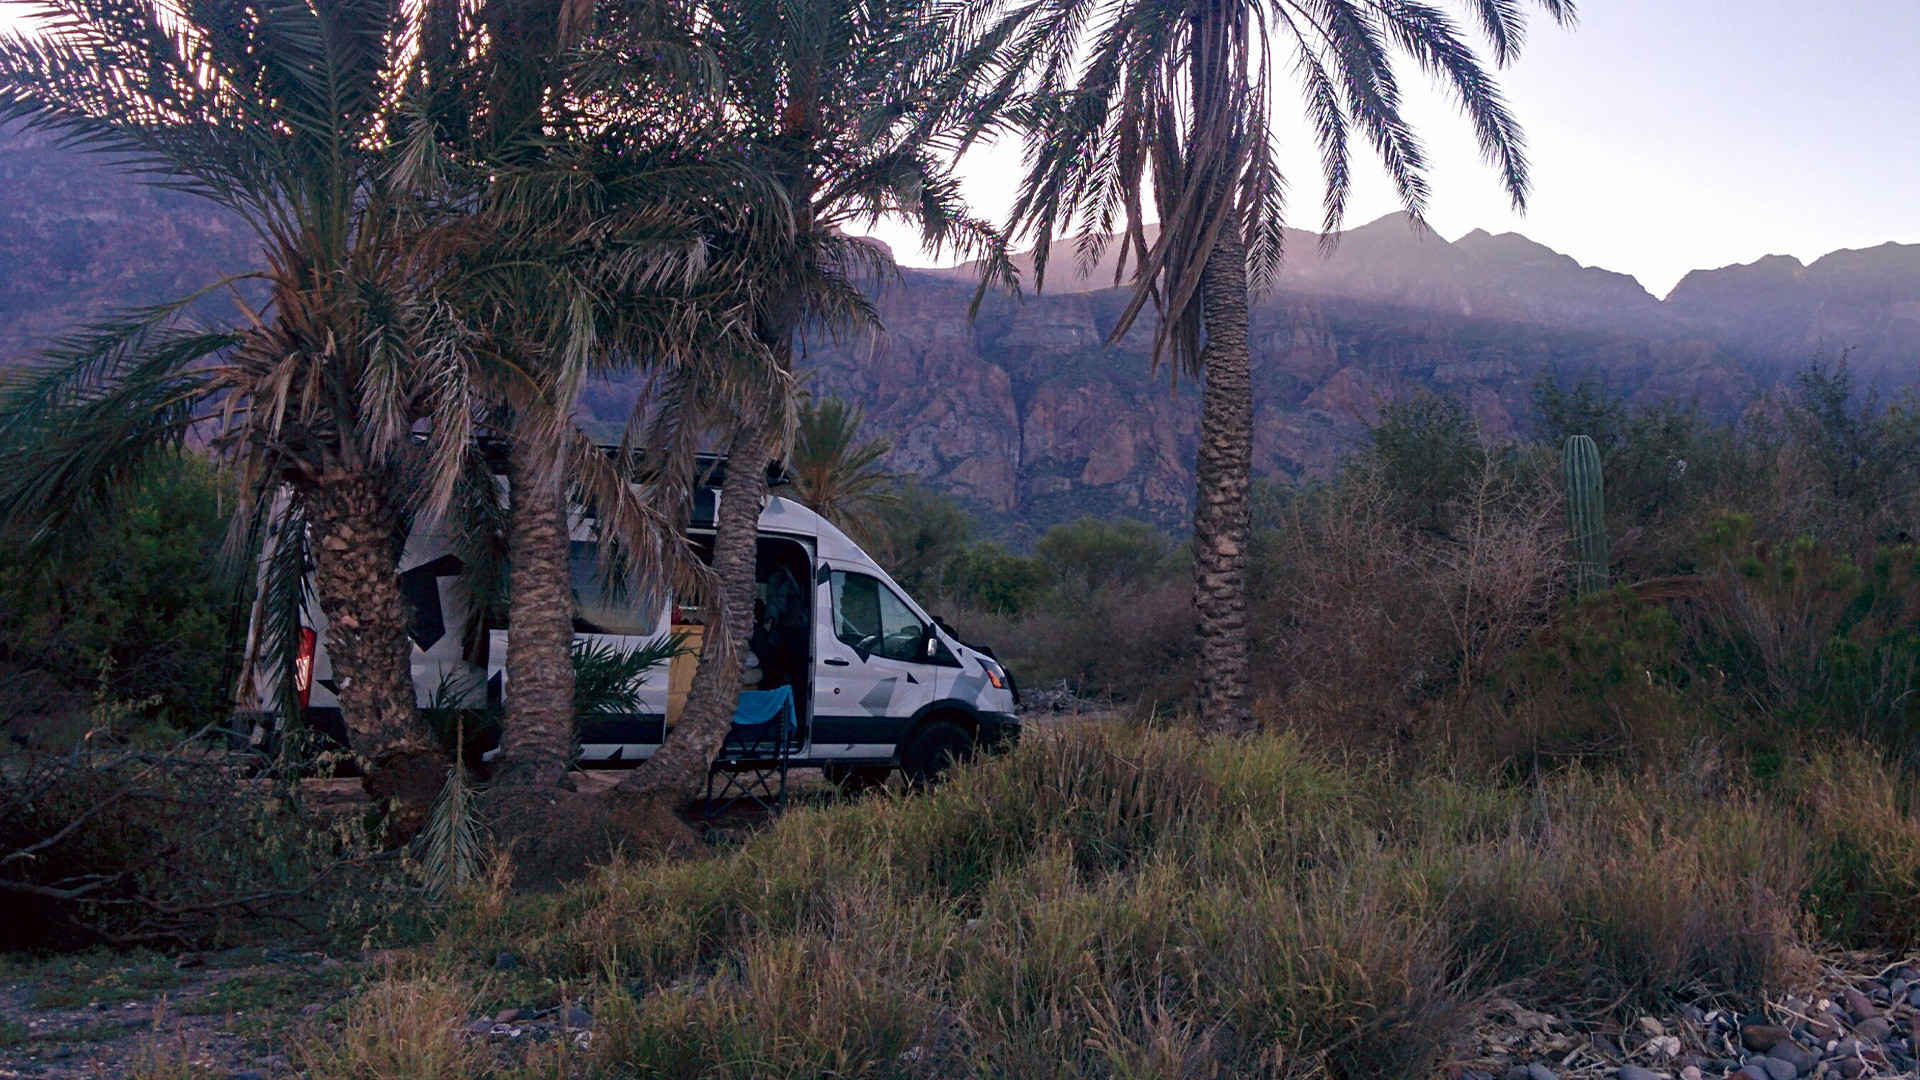 The van hidden by some palms, standing in a canyon